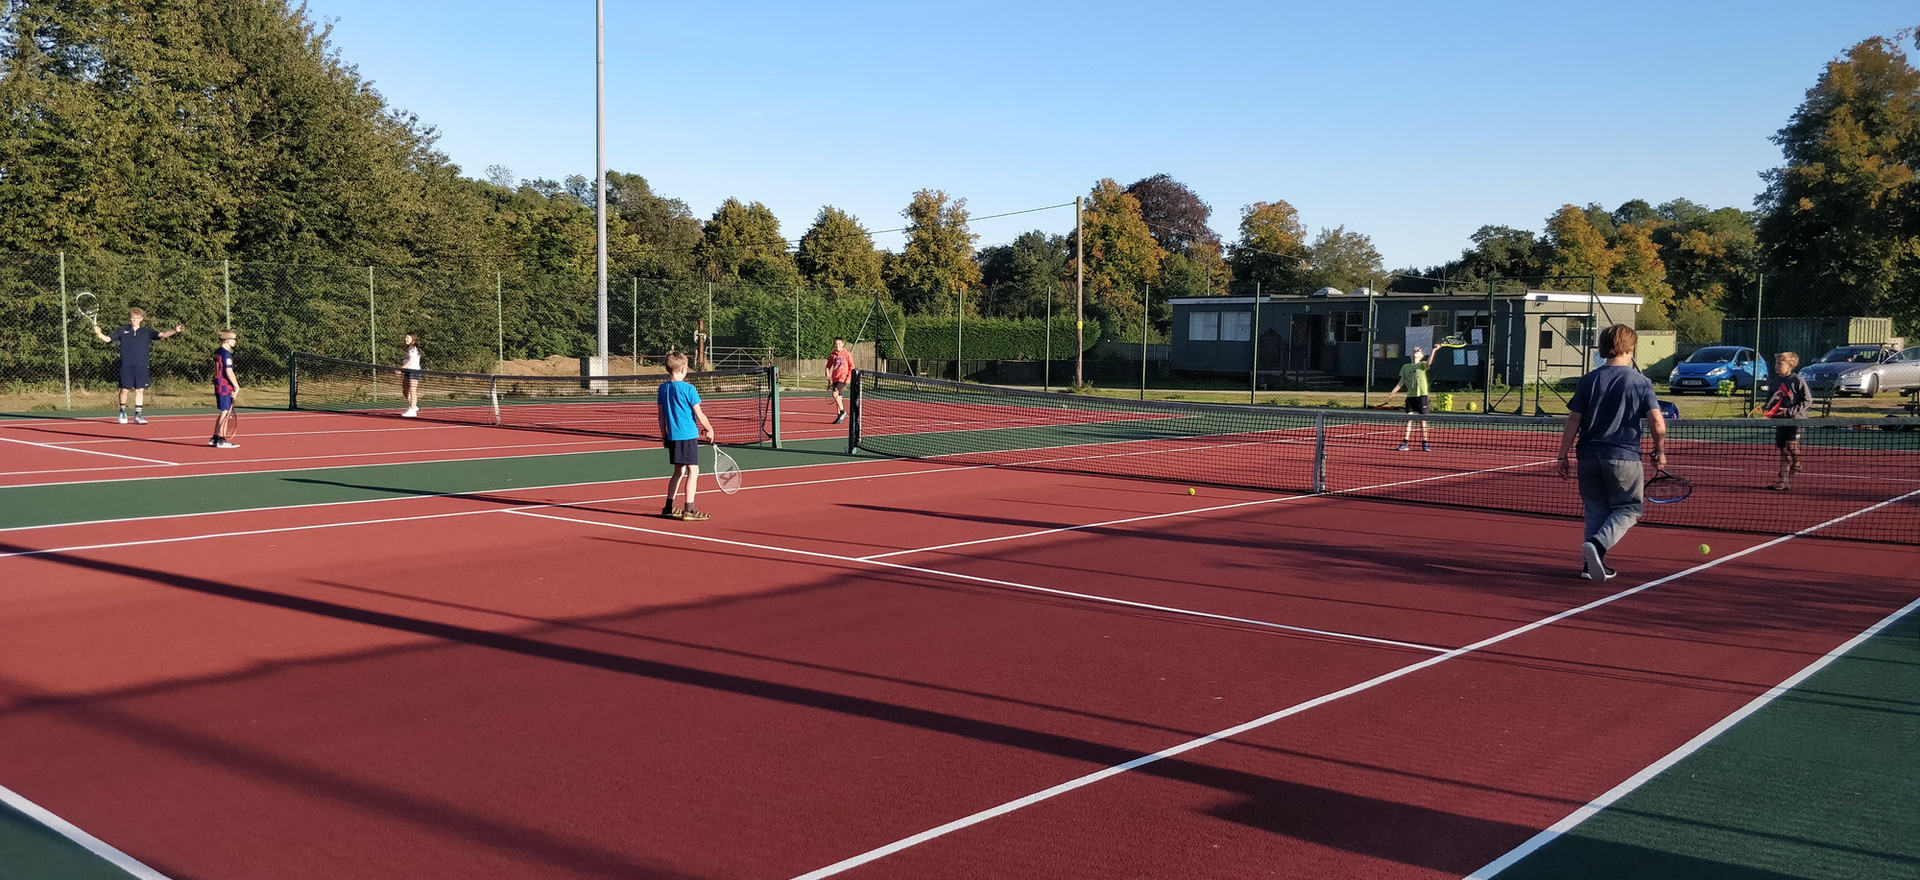 Our courts were fully resurfaced in 2019